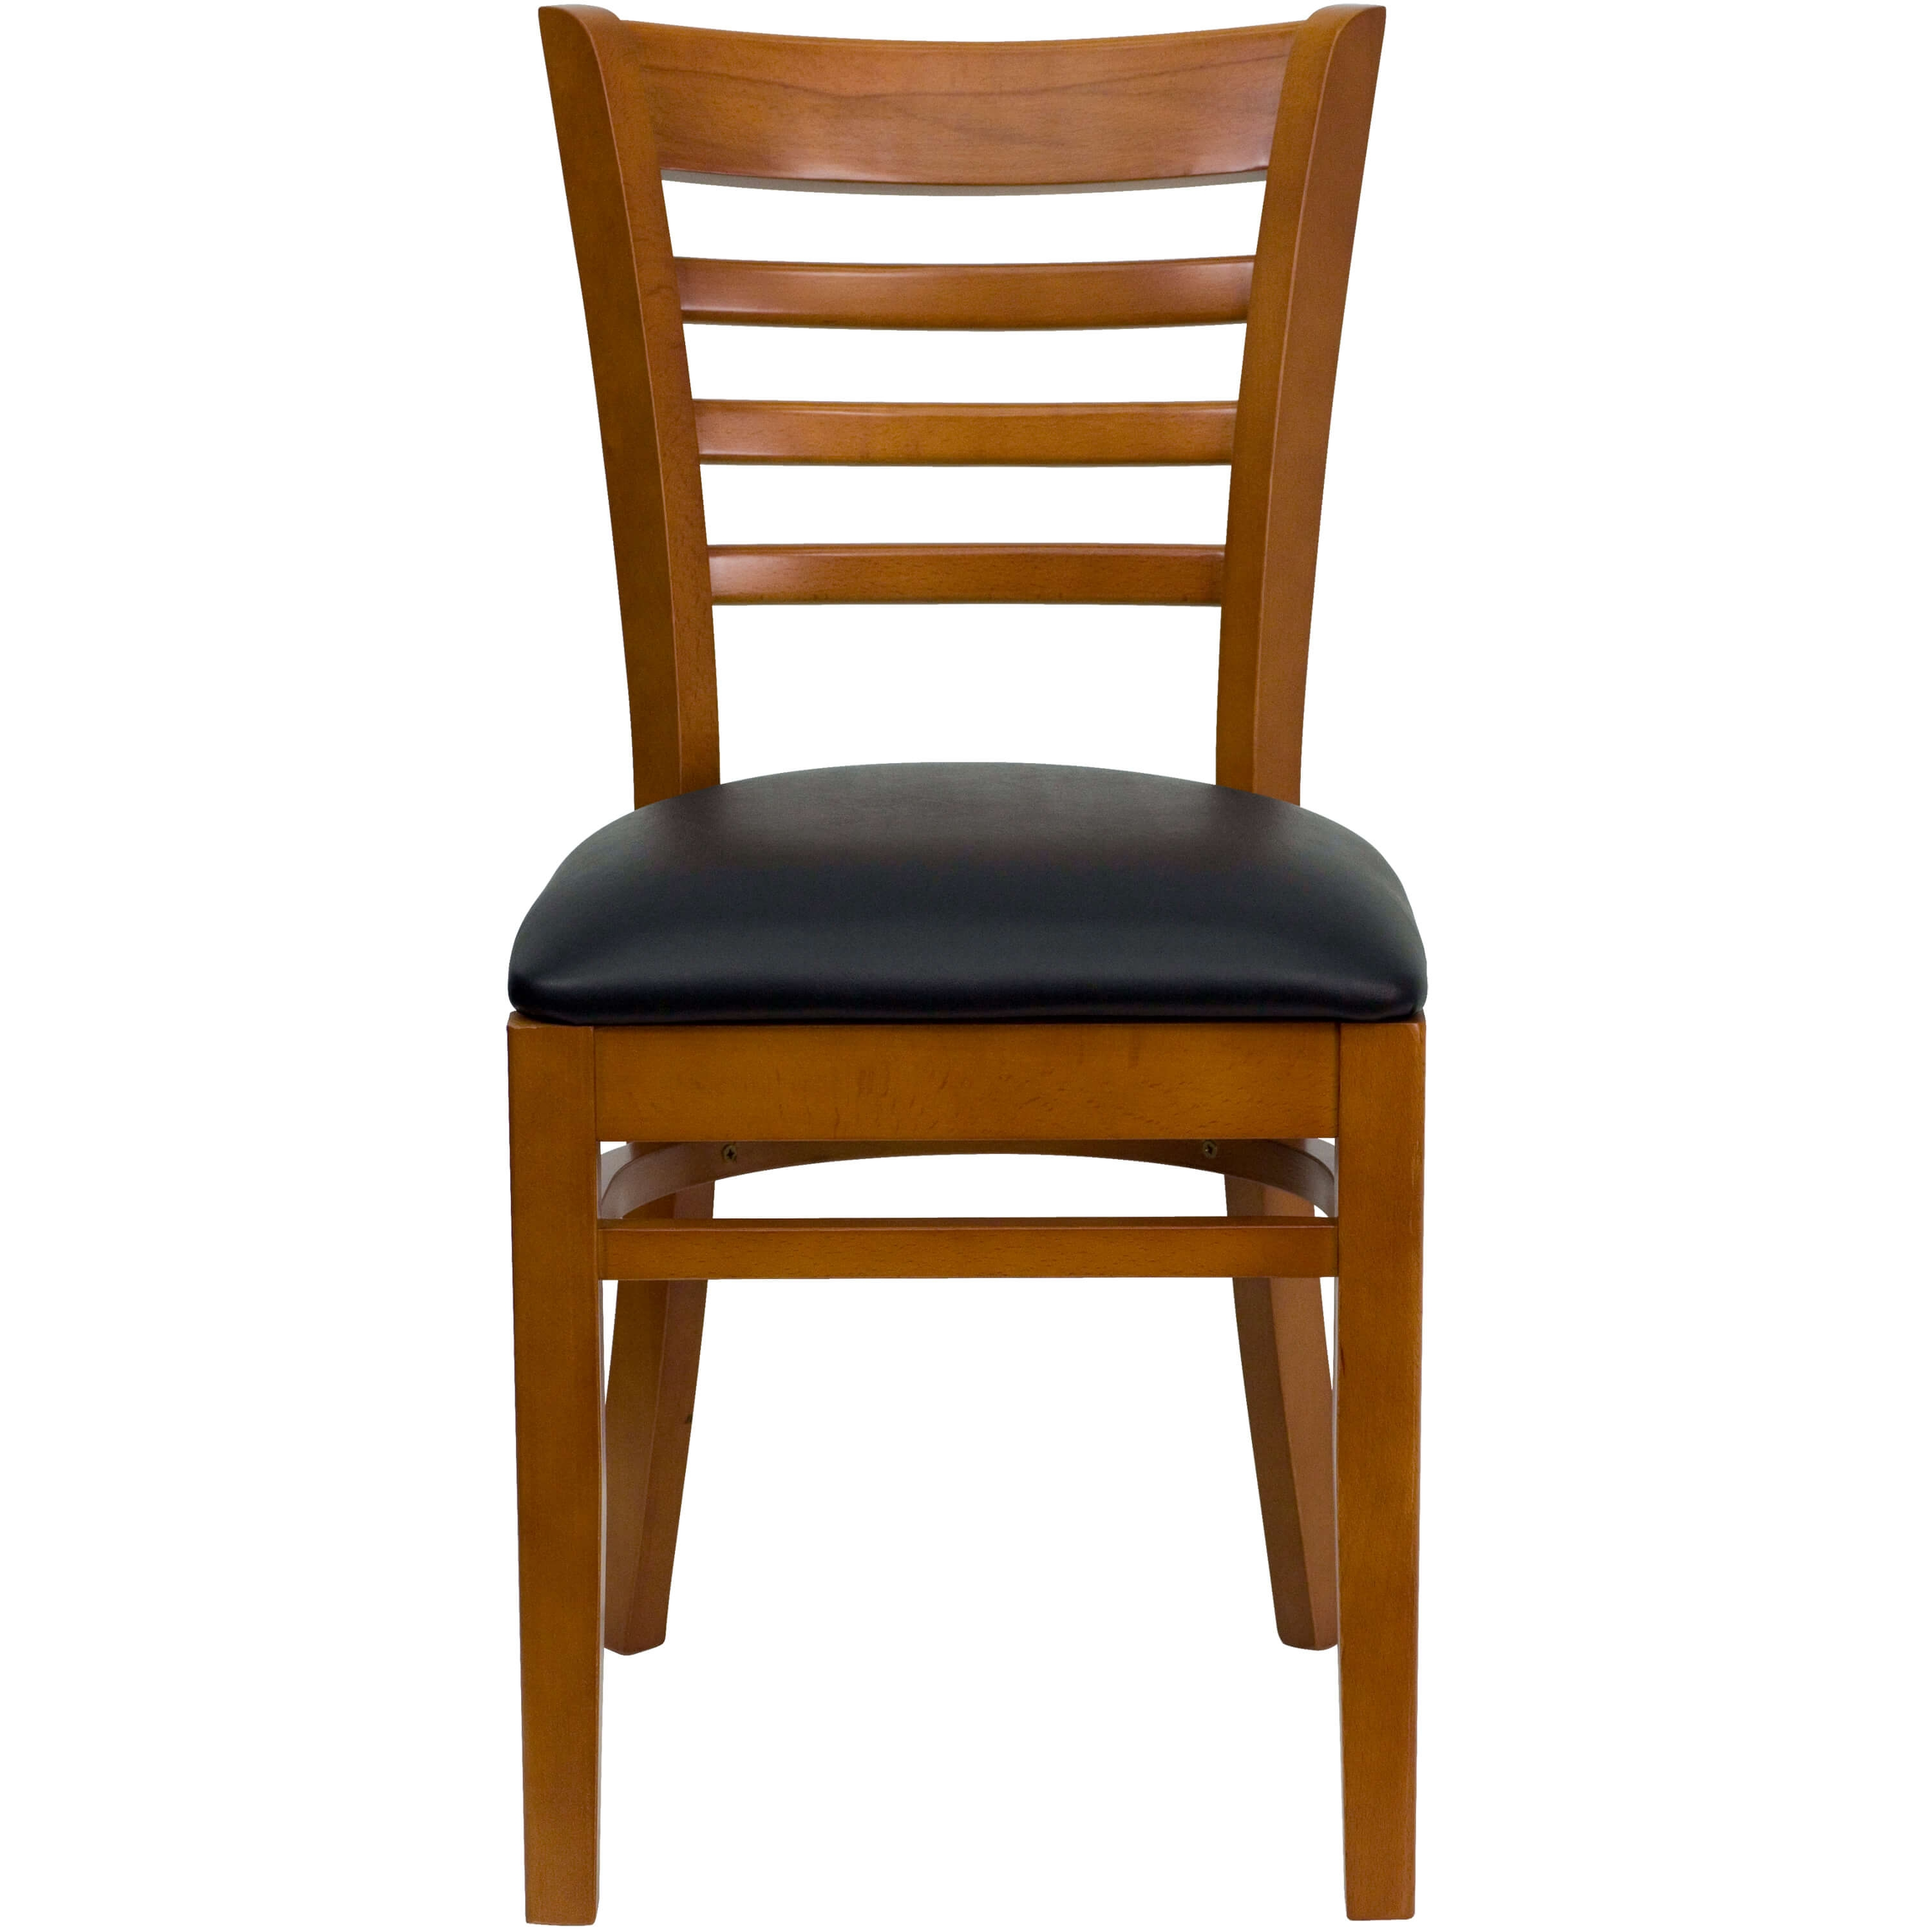 Ladder back wooden dining chair front view